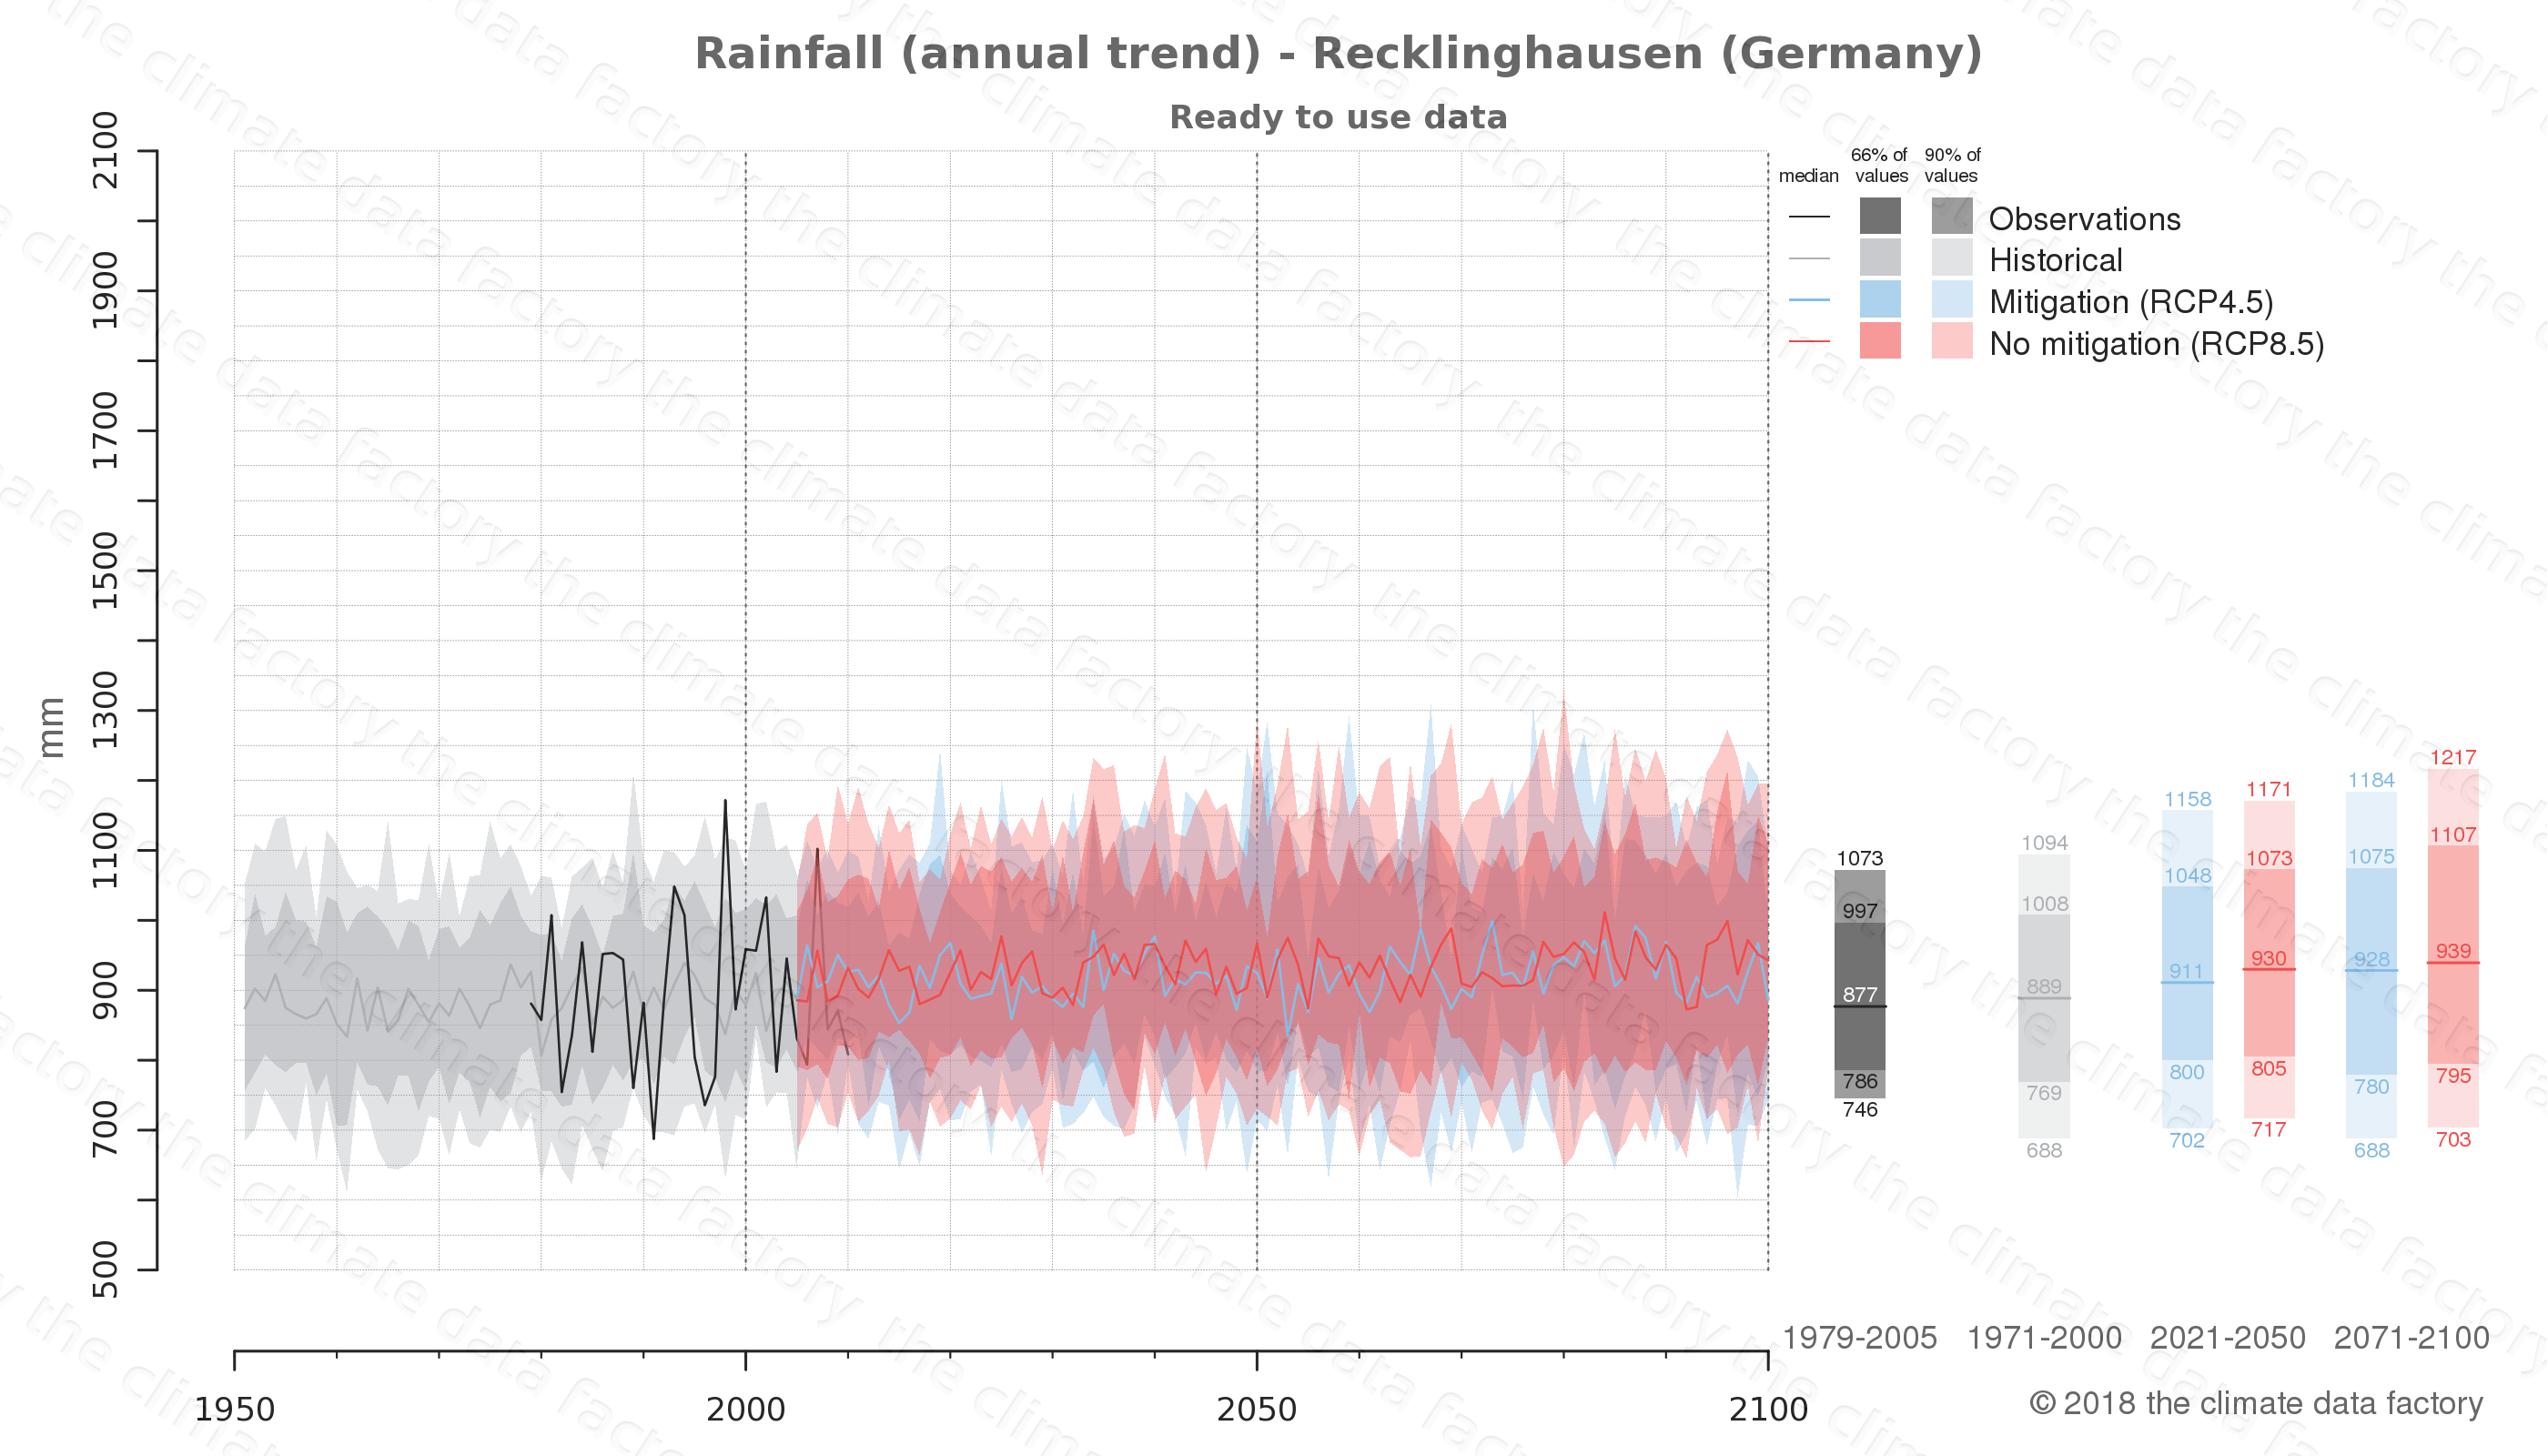 climate change data policy adaptation climate graph city data rainfall recklinghausen germany